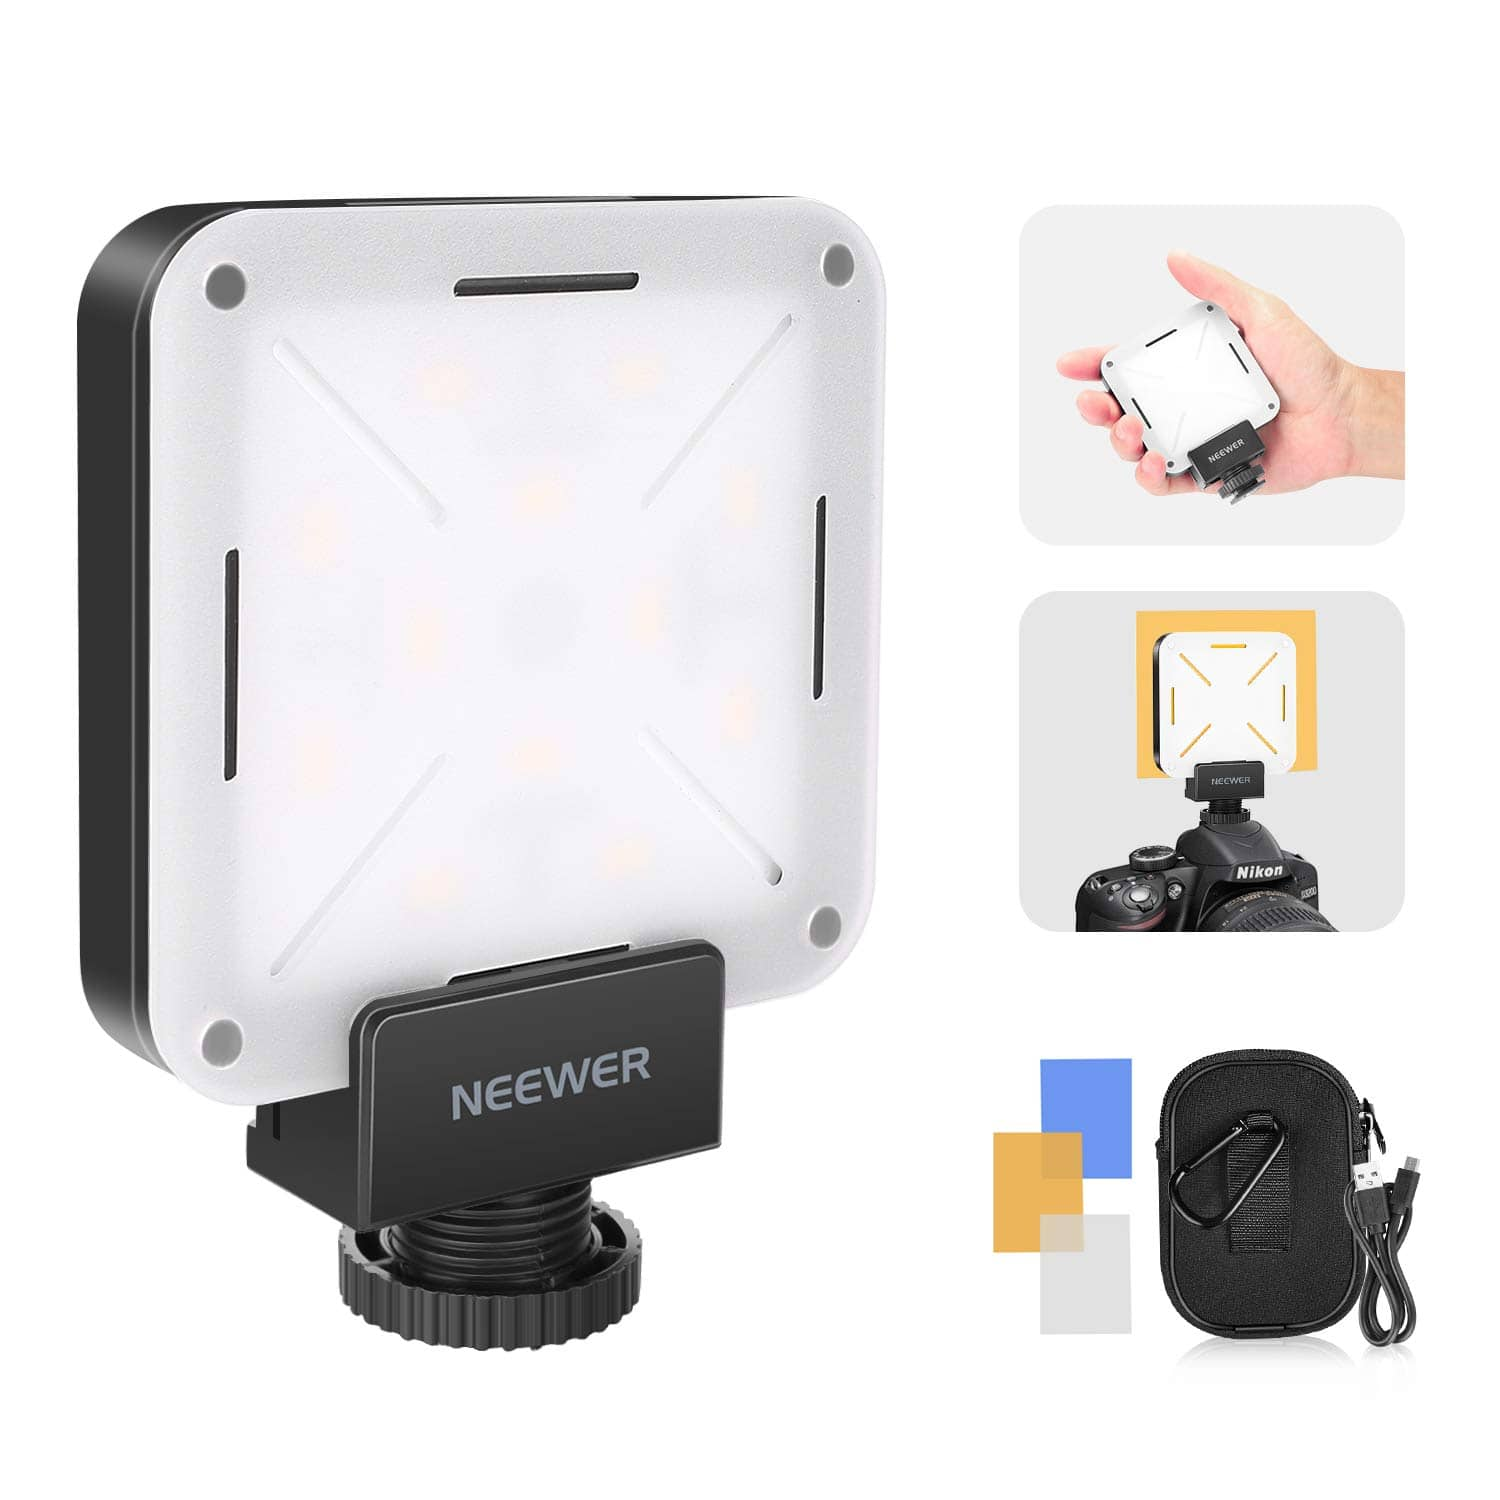 Neewer Pocket On-Camera Video Light (12 LED, USB Charging) - $18.89 + Free Shipping